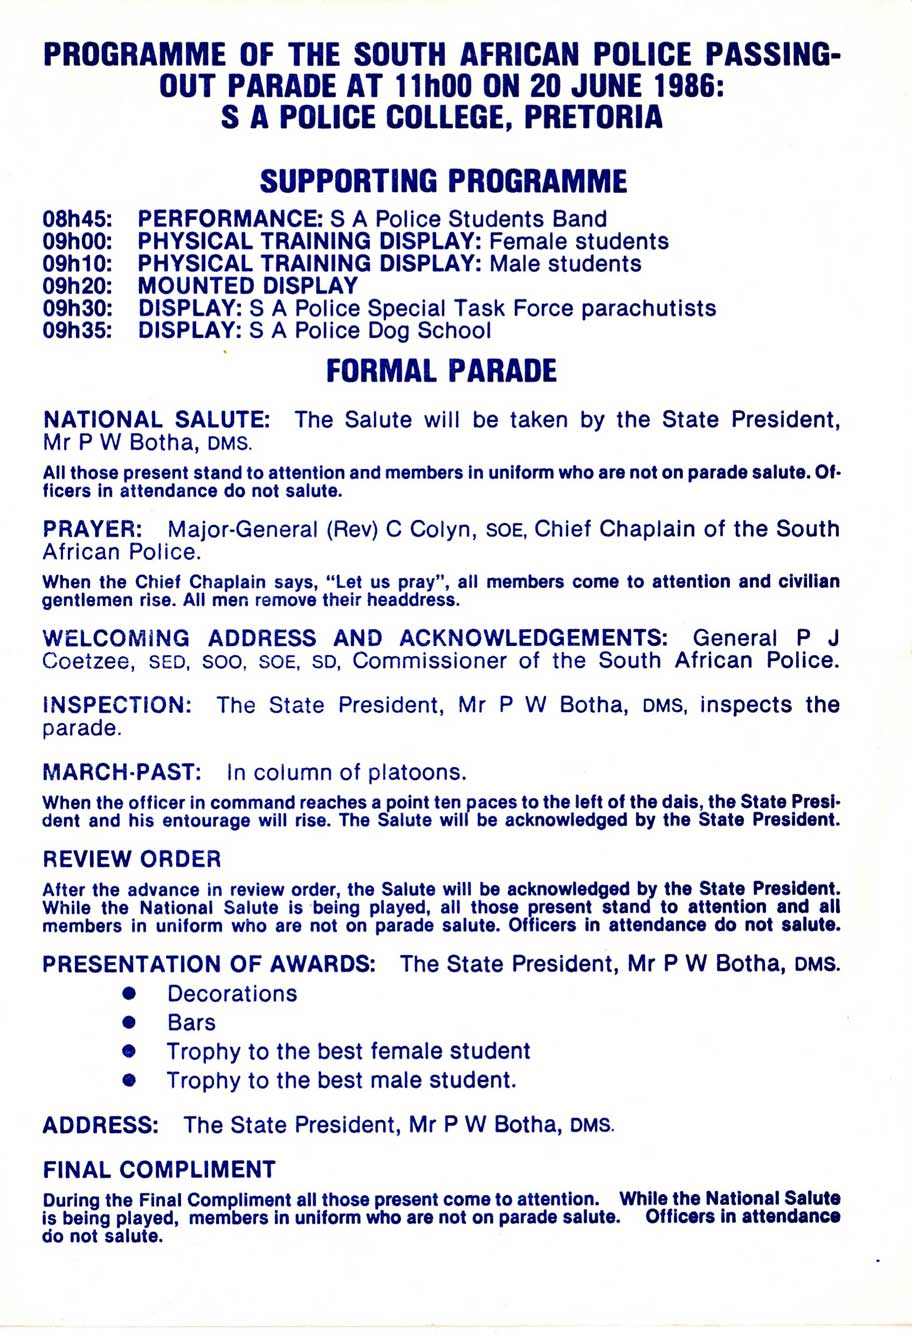 Programme of the South African Police passing-out parade at 11h00 on 20 June 1986